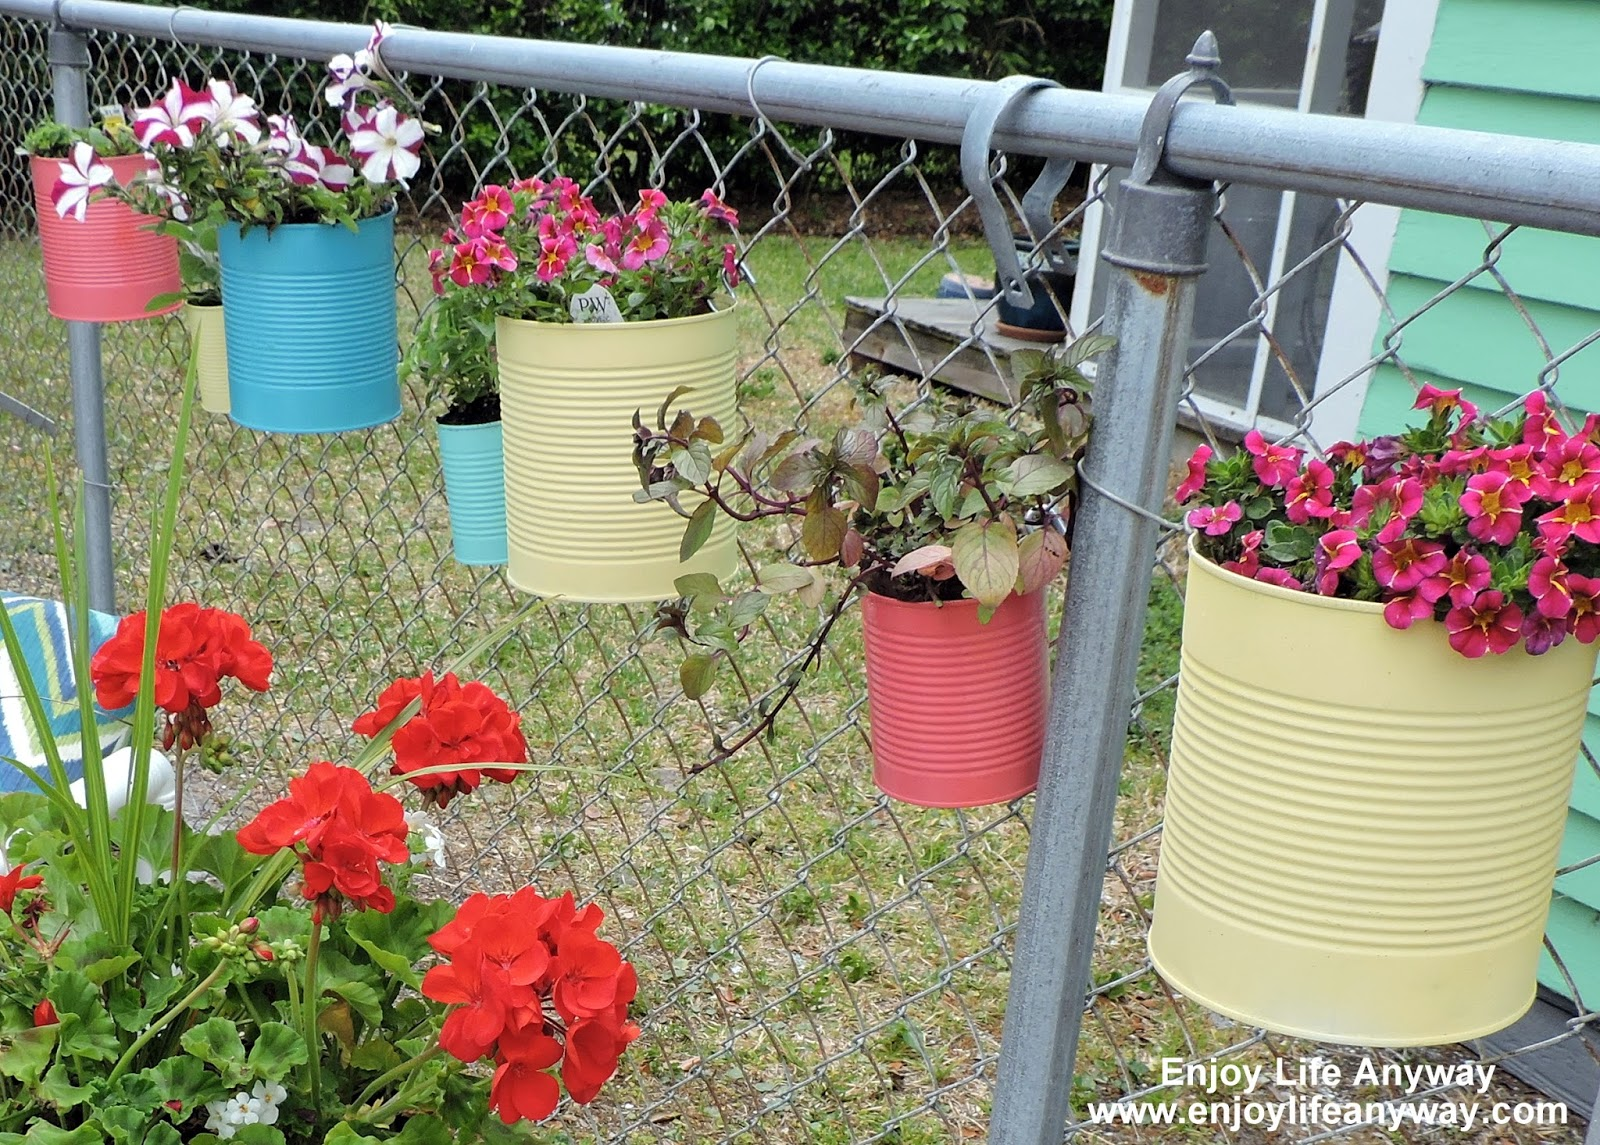 Enjoy Life Anyway Dress Up A Fence With Diy Tin Can Planters